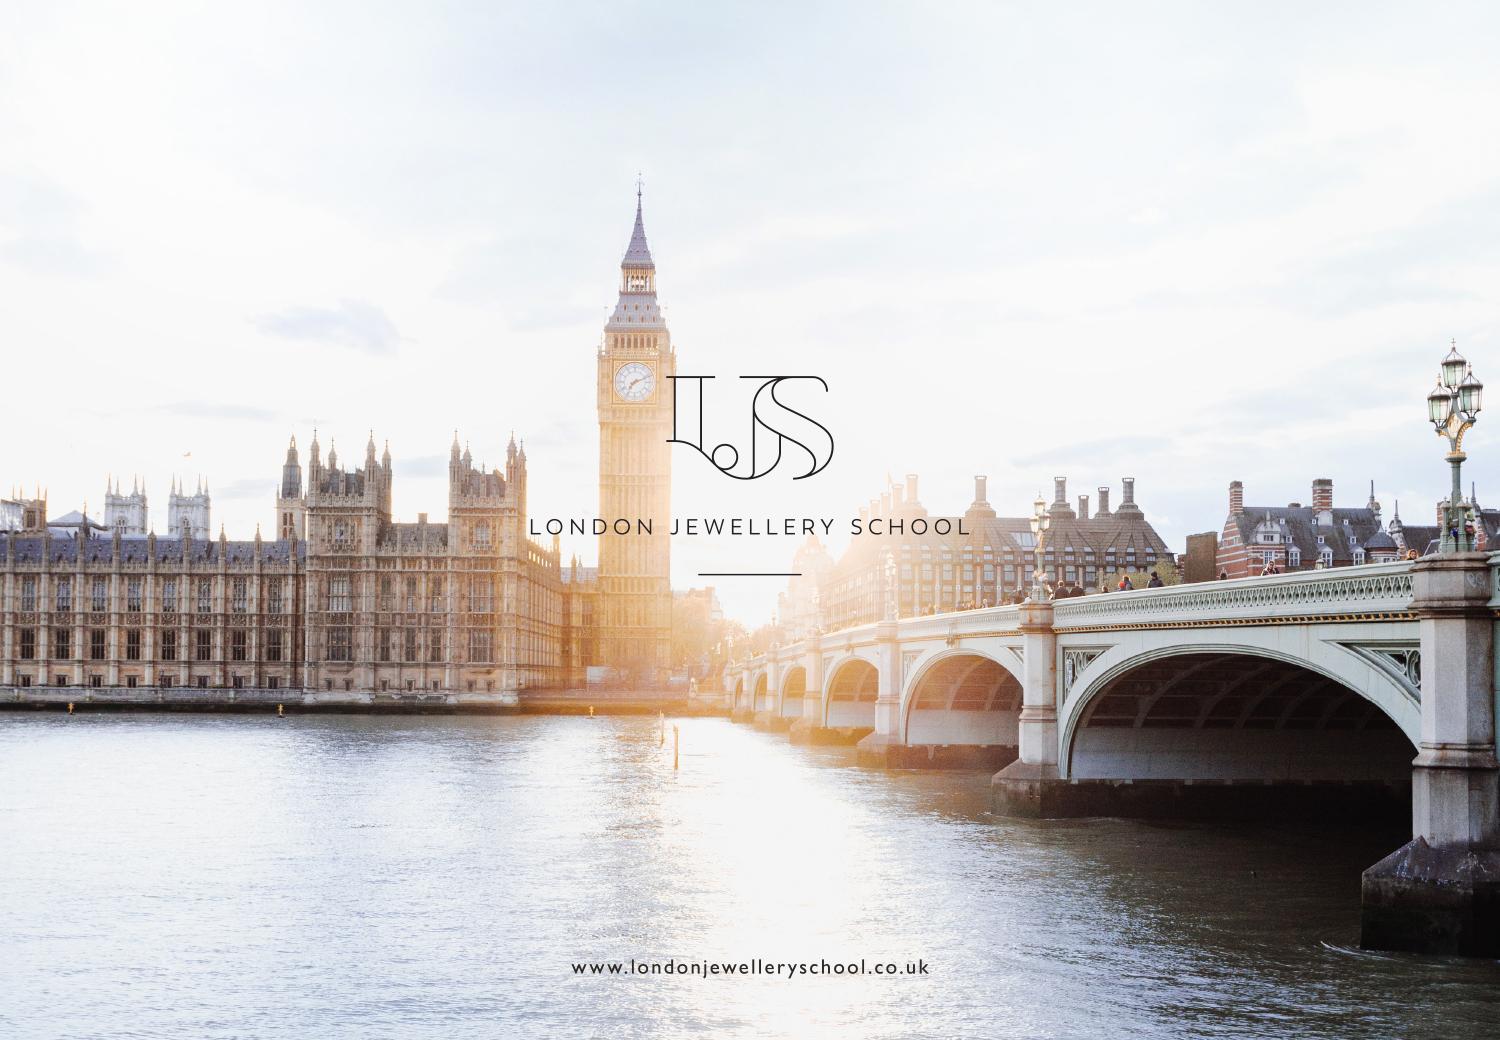 London Jewellery School logo design and branding by Ditto Creative, branding agency for small businesses in Kent, UK